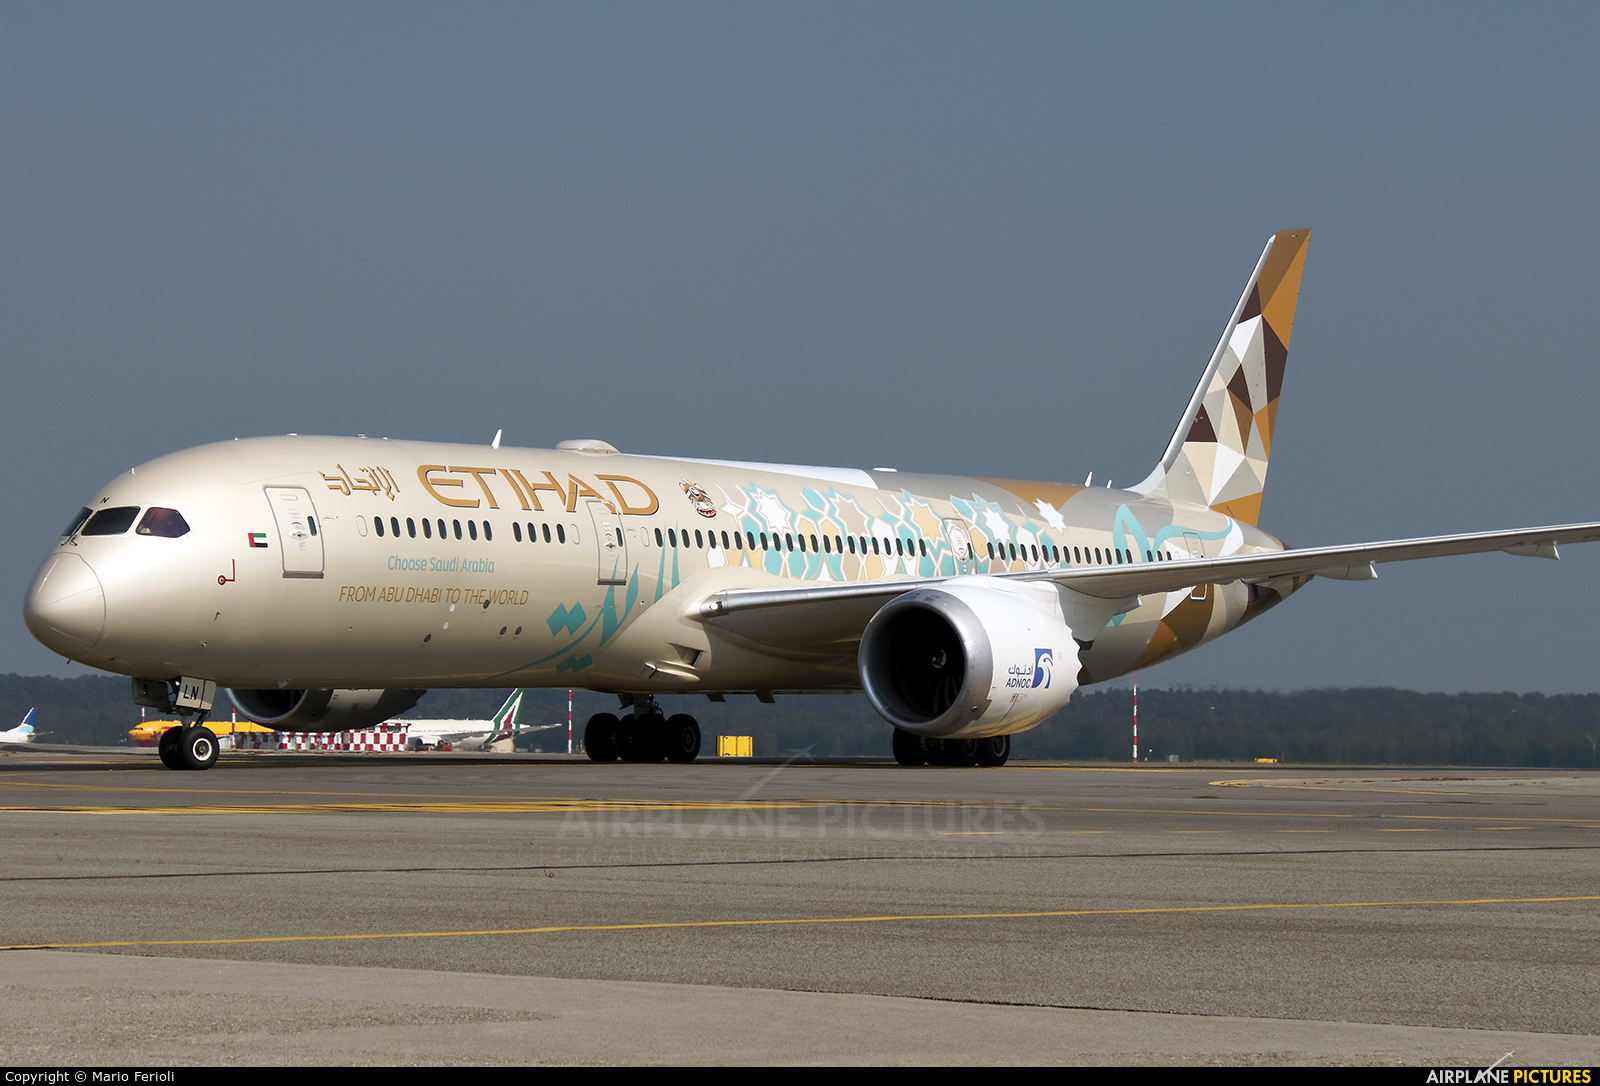 Etihad Airways A6-BLN aircraft at Milan - Malpensa